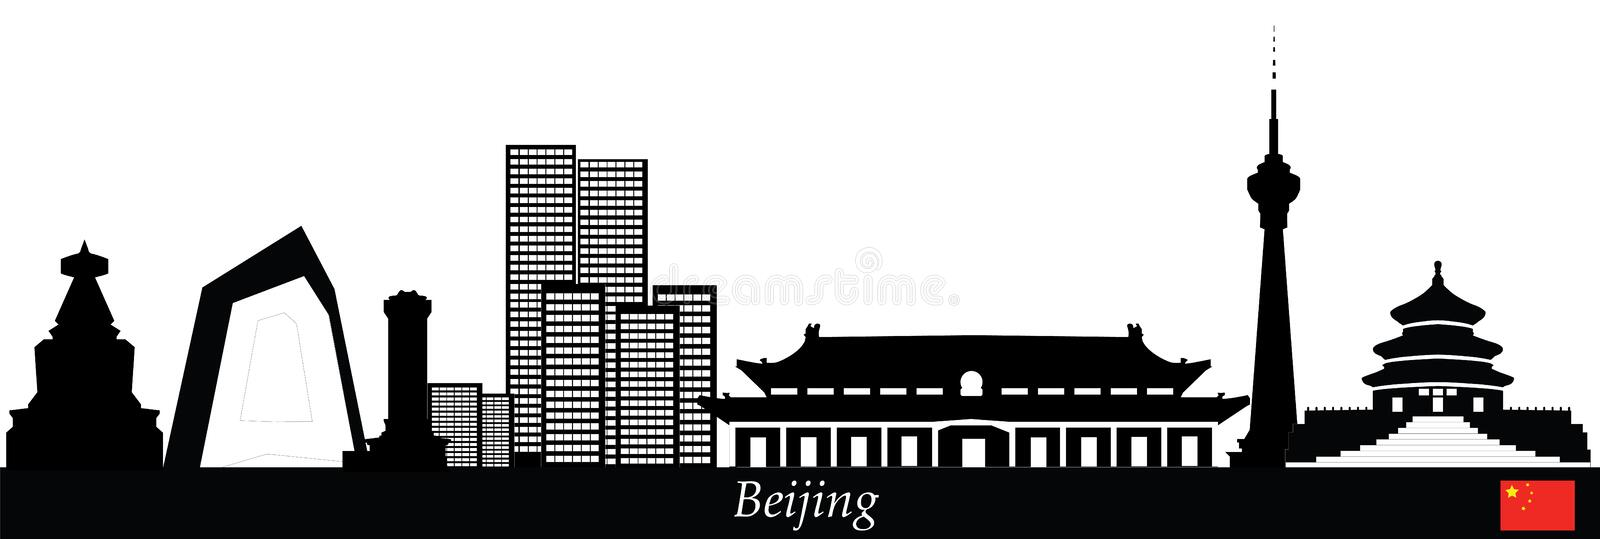 De horizon van Peking stock illustratie